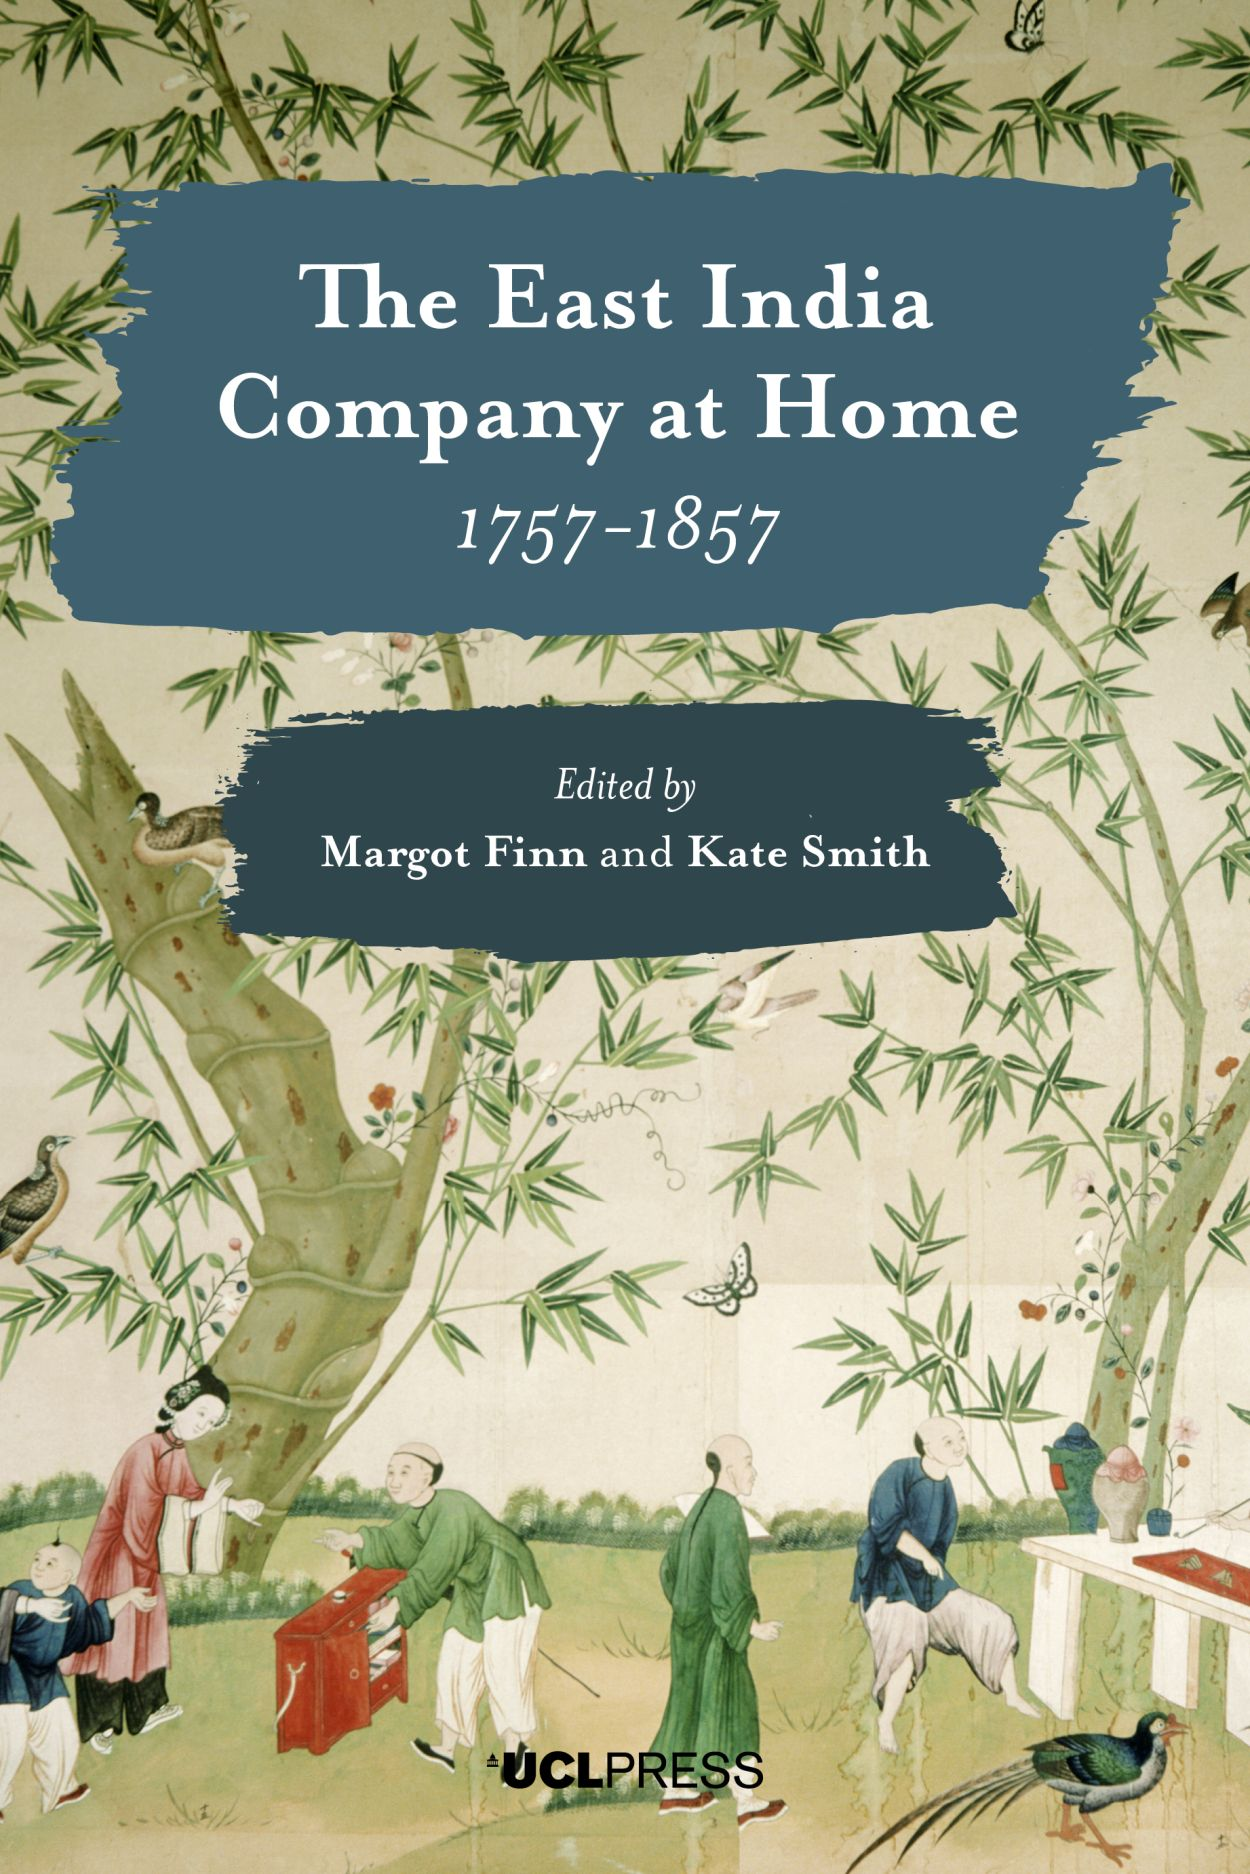 East India Company at Home, 1757-1857